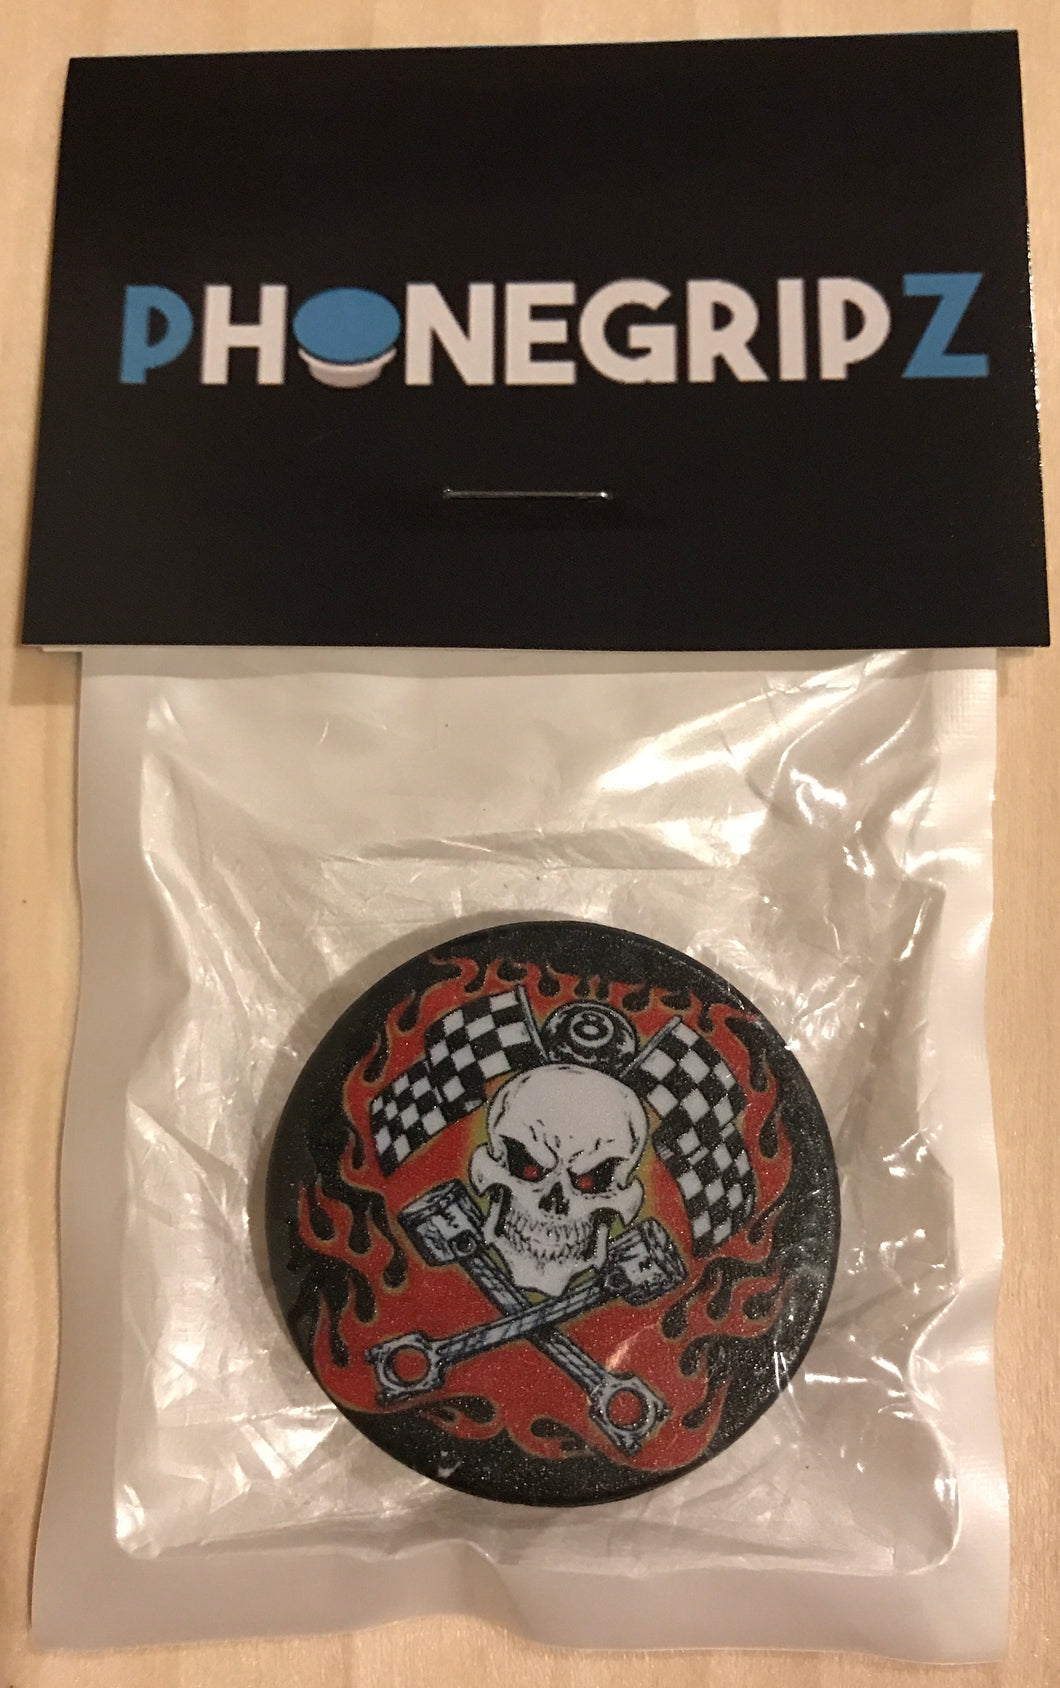 Racing Skull Universal Phone Grip Pop Out PhoneGripz